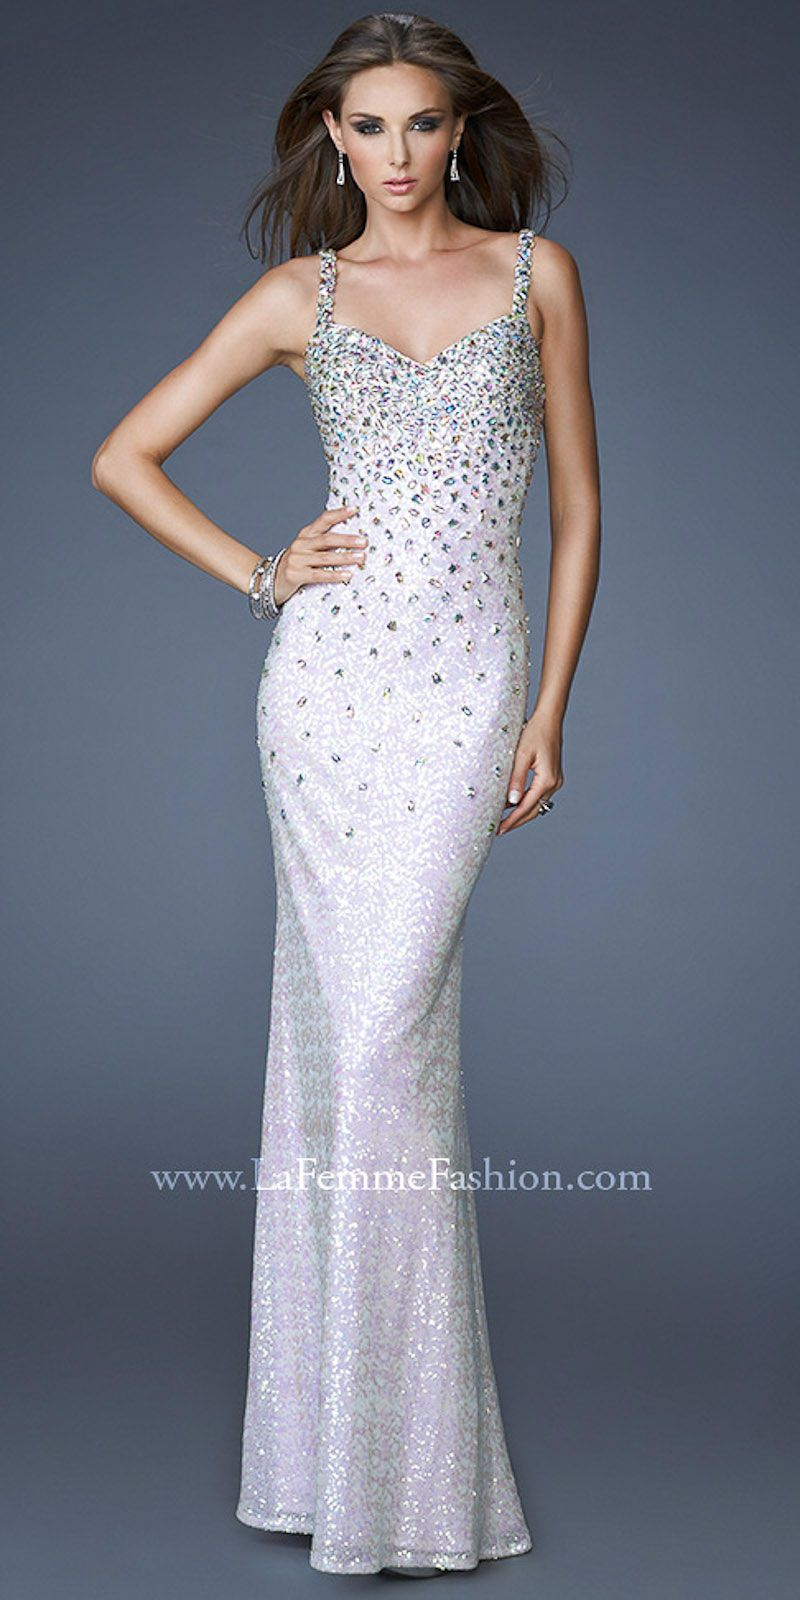 Sequins and jewel encrusted evening gowns by la femme fashion